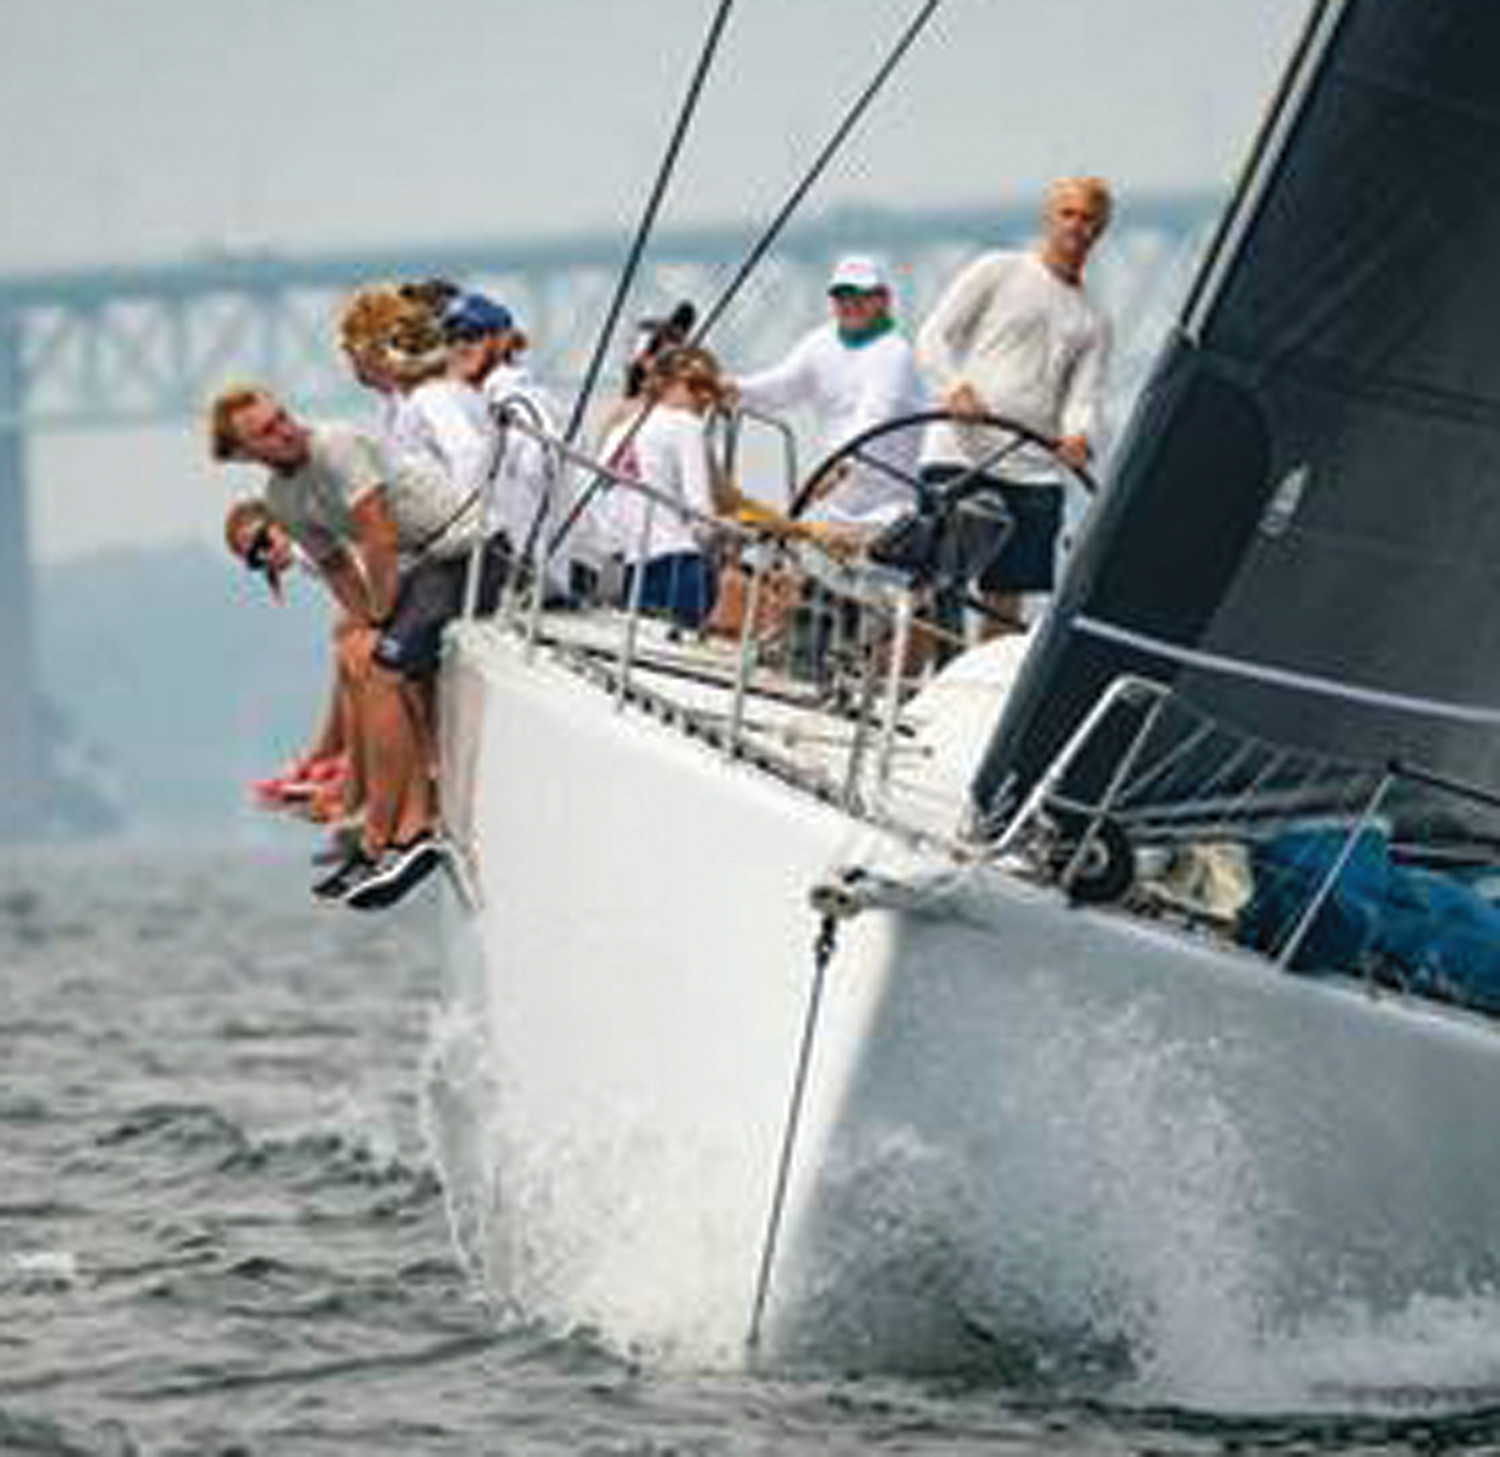 ON THE WATER: The Swan 48 Dreamcatcher  from Mystic, Conn. and the J/105 Young American YCC from Rye, N.Y. won the Youth Trophy in IRC and PHRF, respectively, at the 2018 Ida Lewis Distance Race.